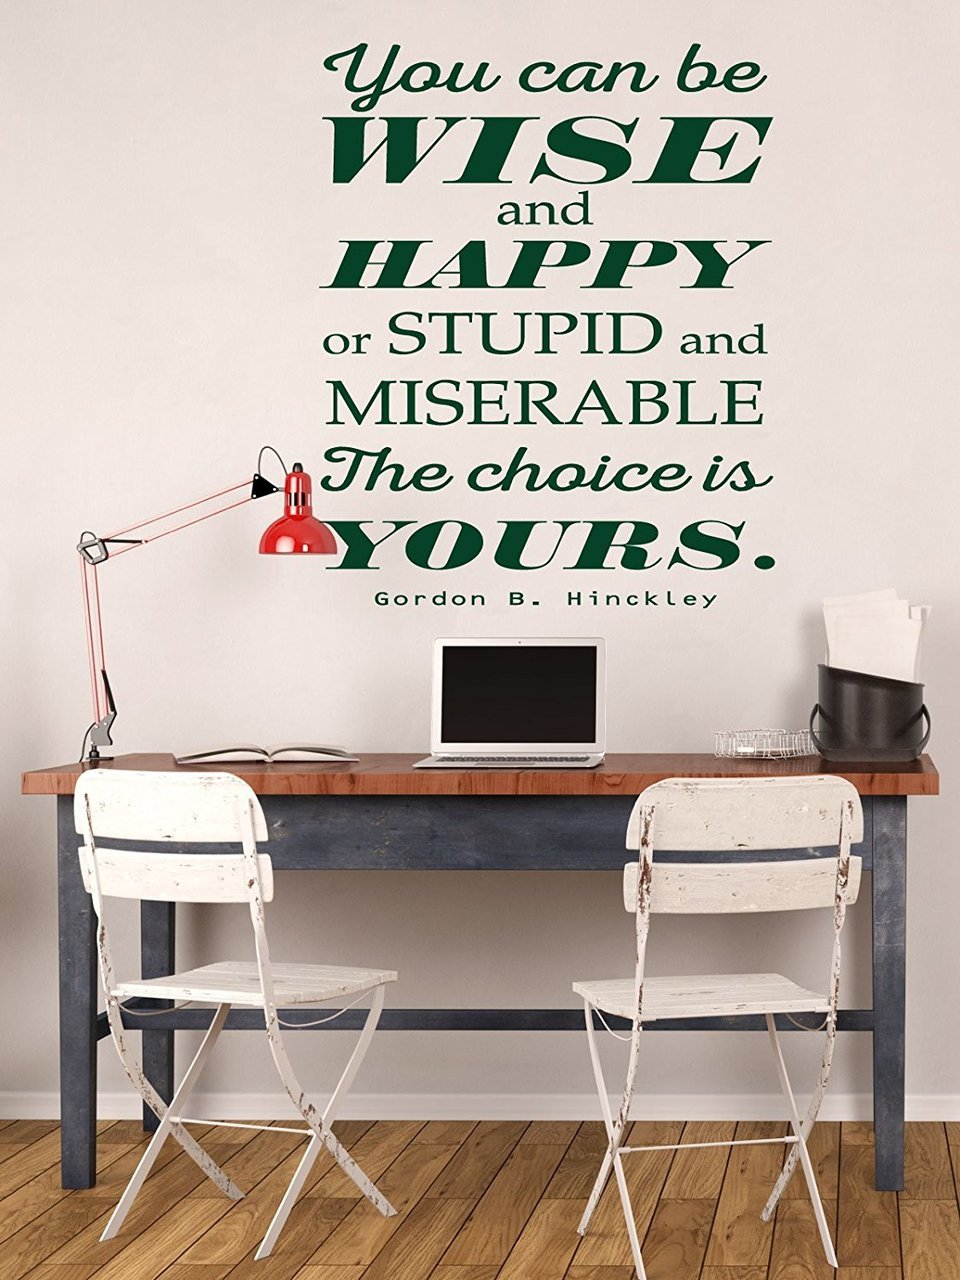 """Wise and Happy. Stupid and Miserable. Choice is Yours"" - Pte Gordon B Hinckley"